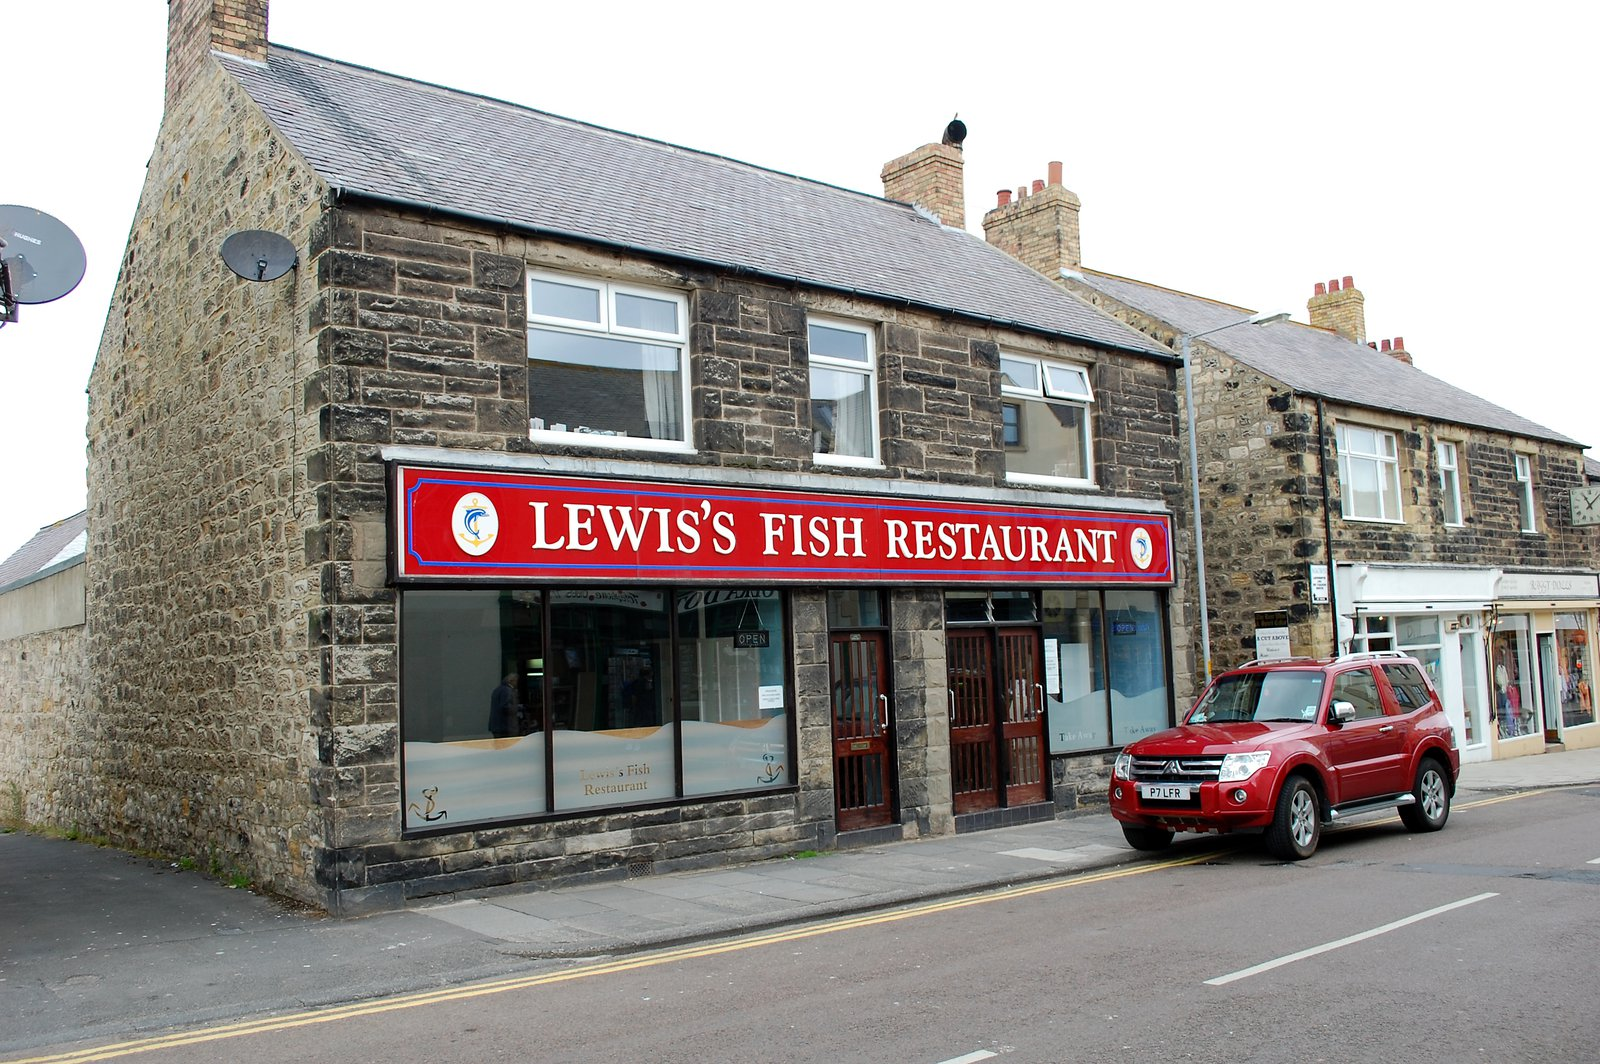 Lewis's Fish Restaurant